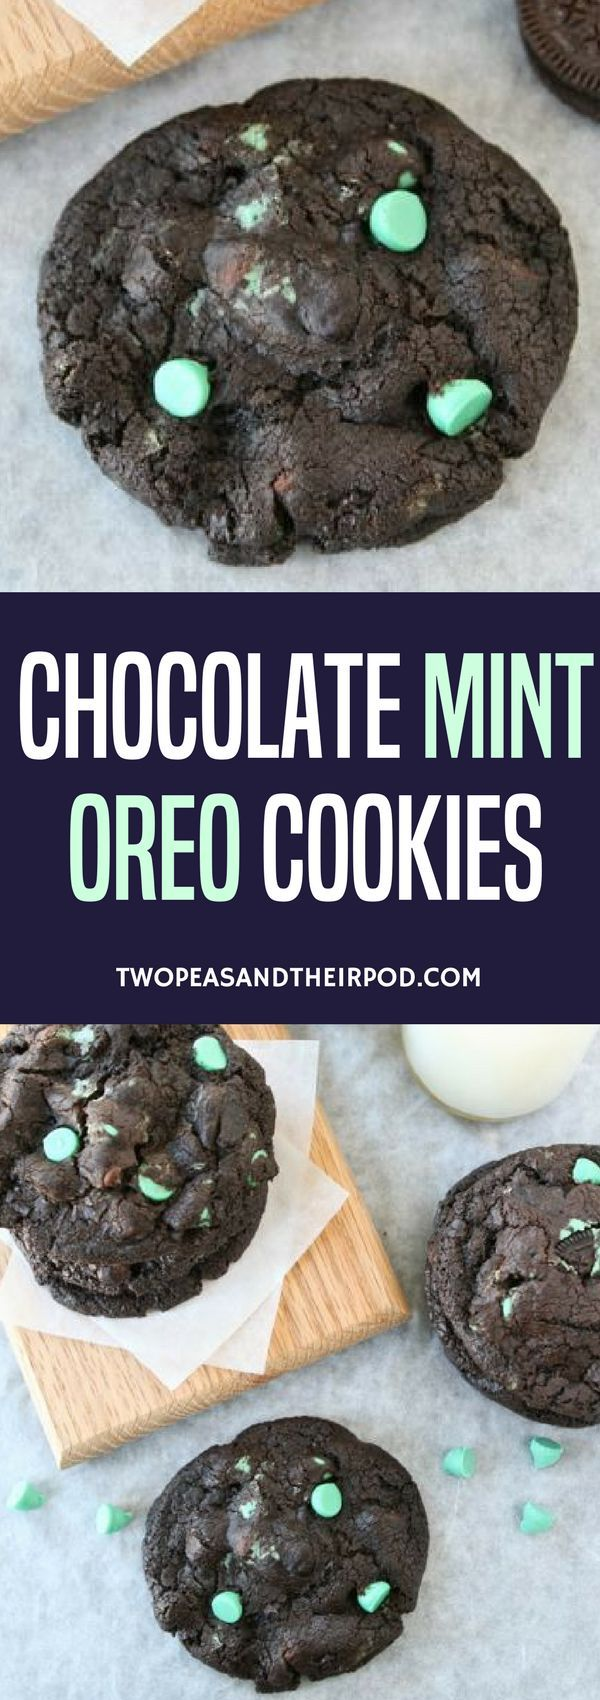 Chocolate cookies with chocolate chips, mint green chips, and chopped up Cool Mint Oreos. These cookies are rich and decadent with a refreshing mint twist. #dessert #cookies #chocolate